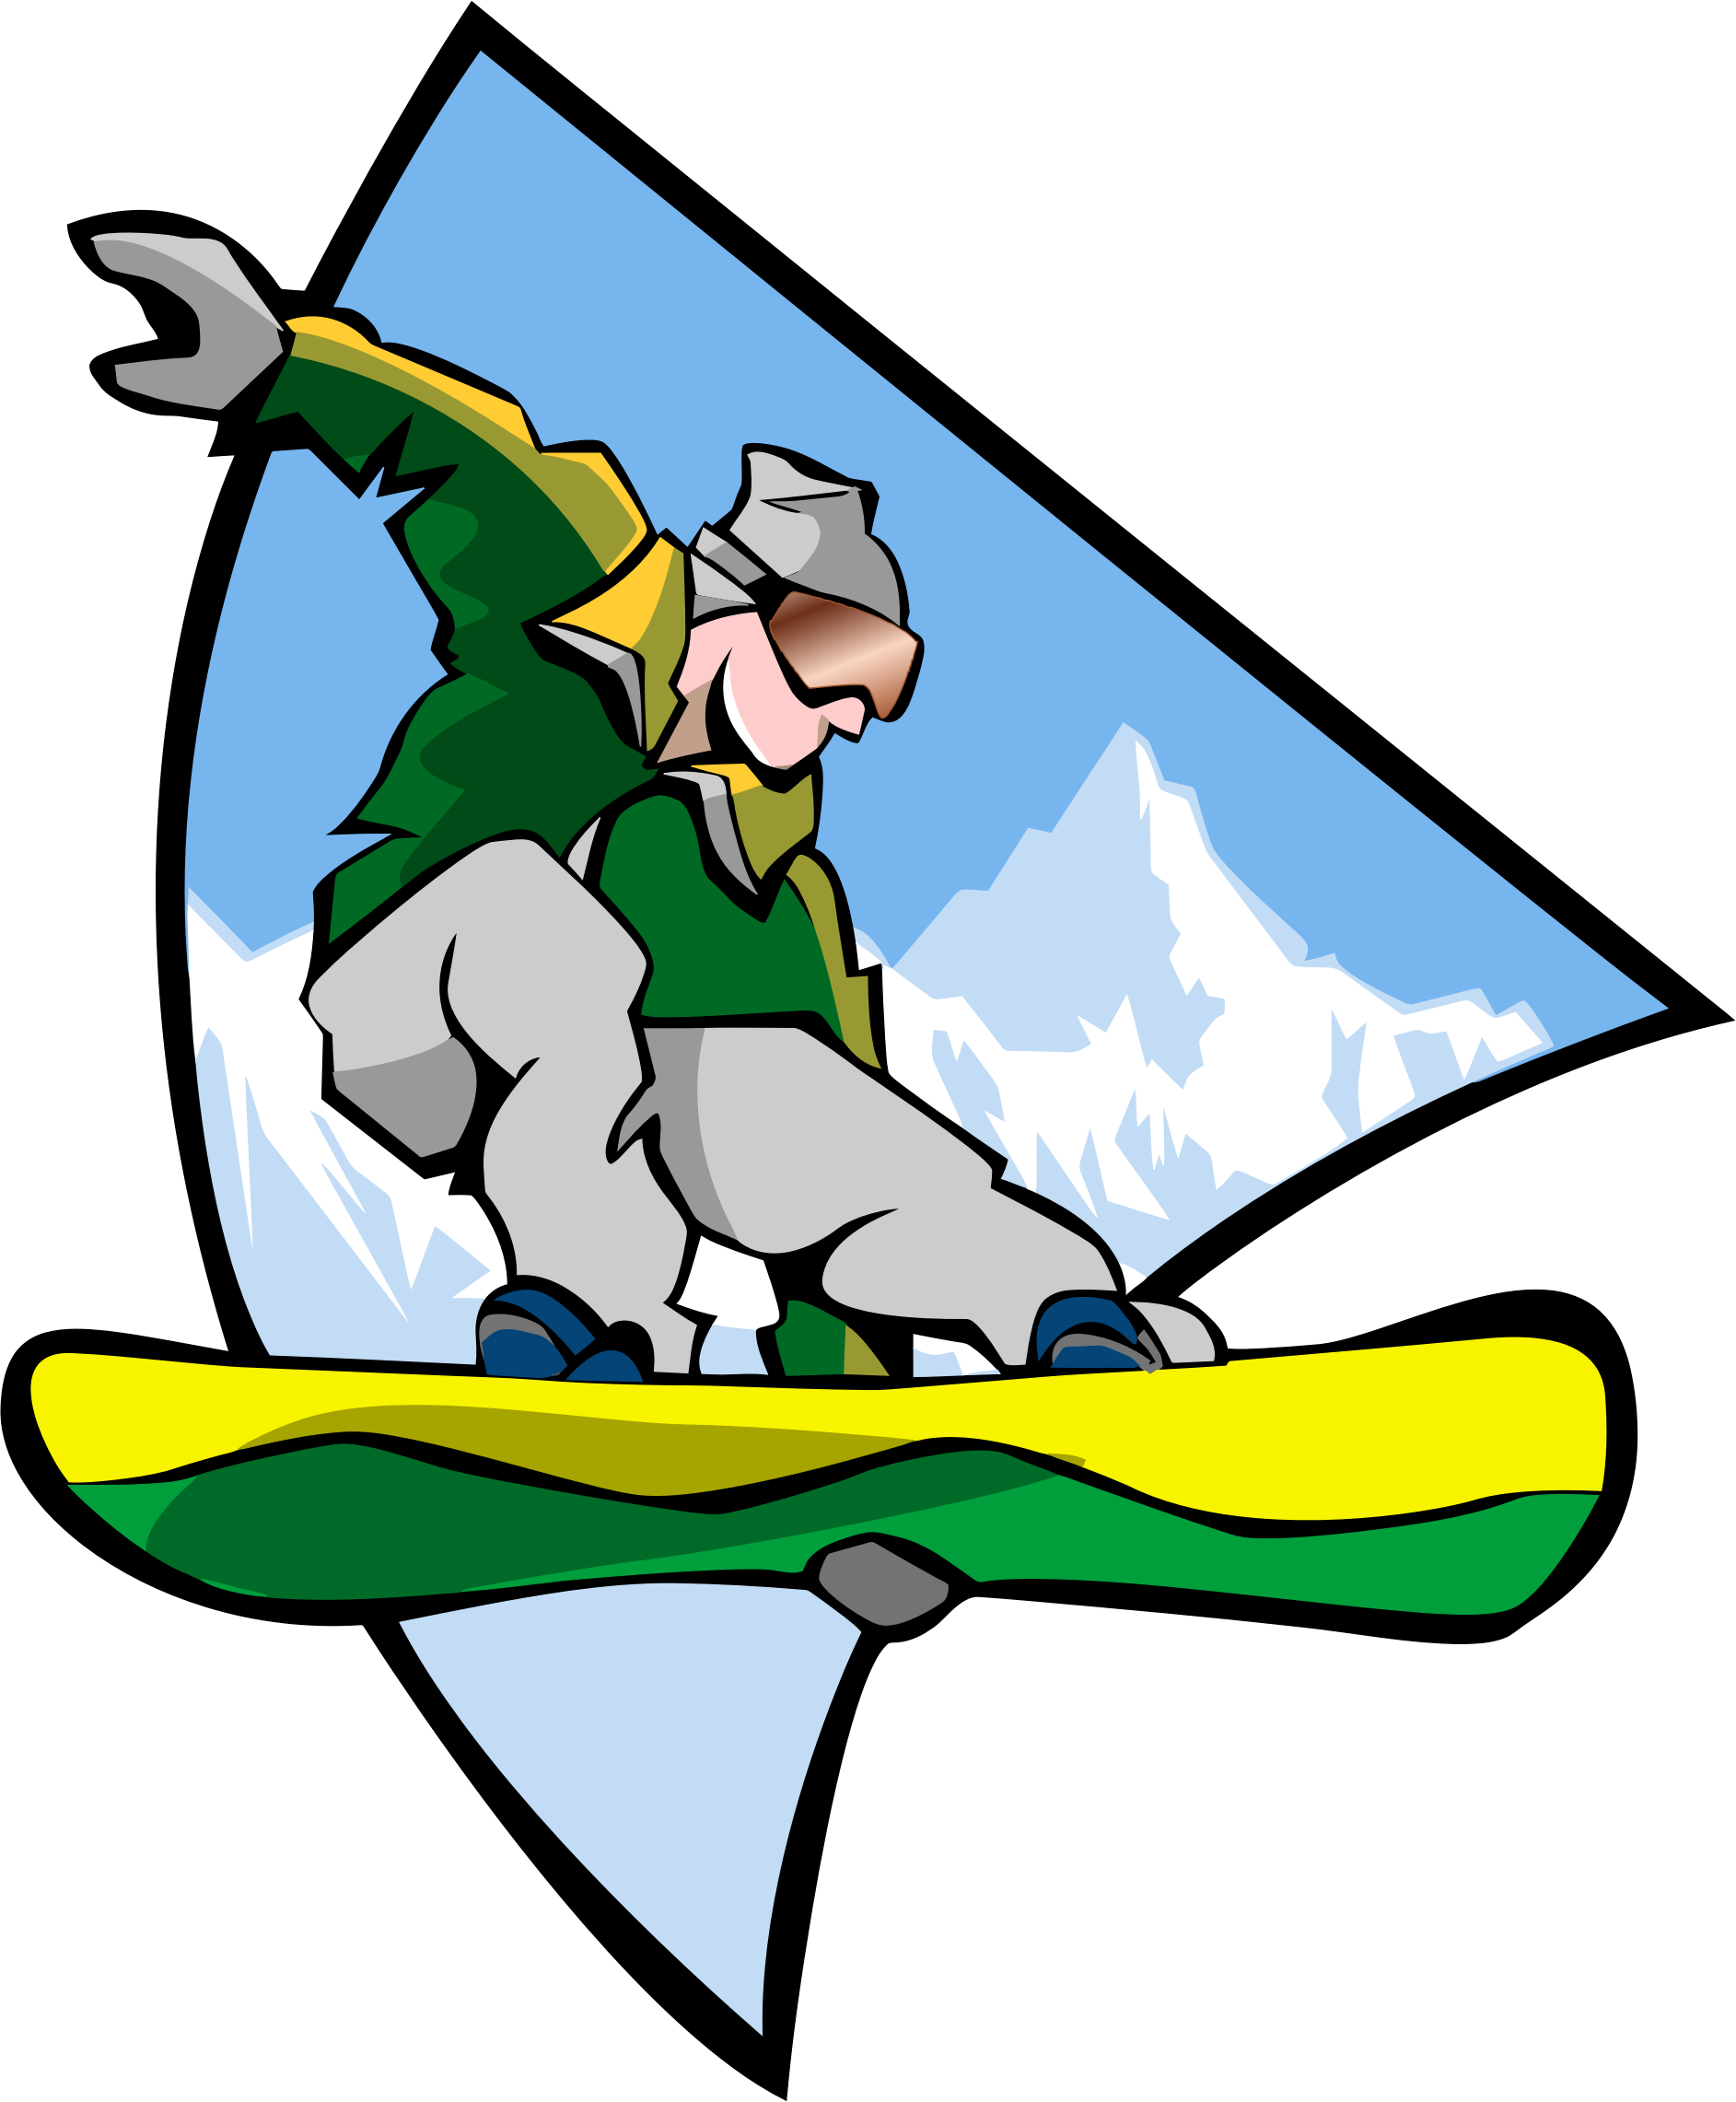 Men clipart snowboarding. Man icons png free